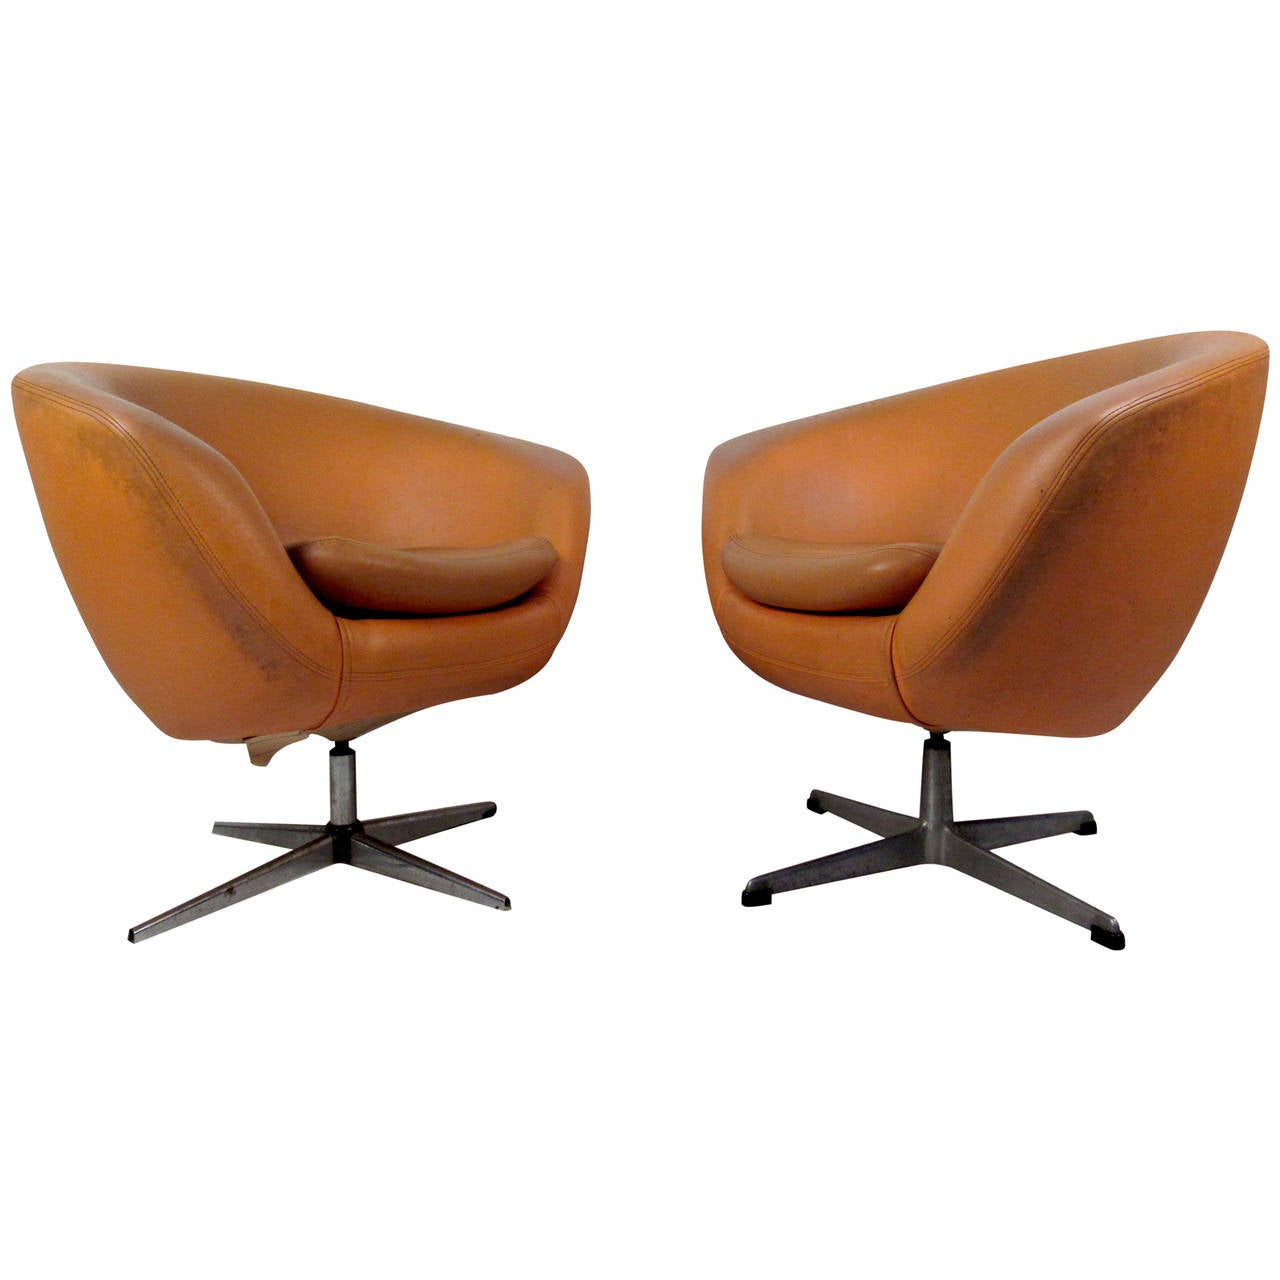 Pair of Mid Century Modern Overman Orange Lounge Chairs For Sale at 1stdibs